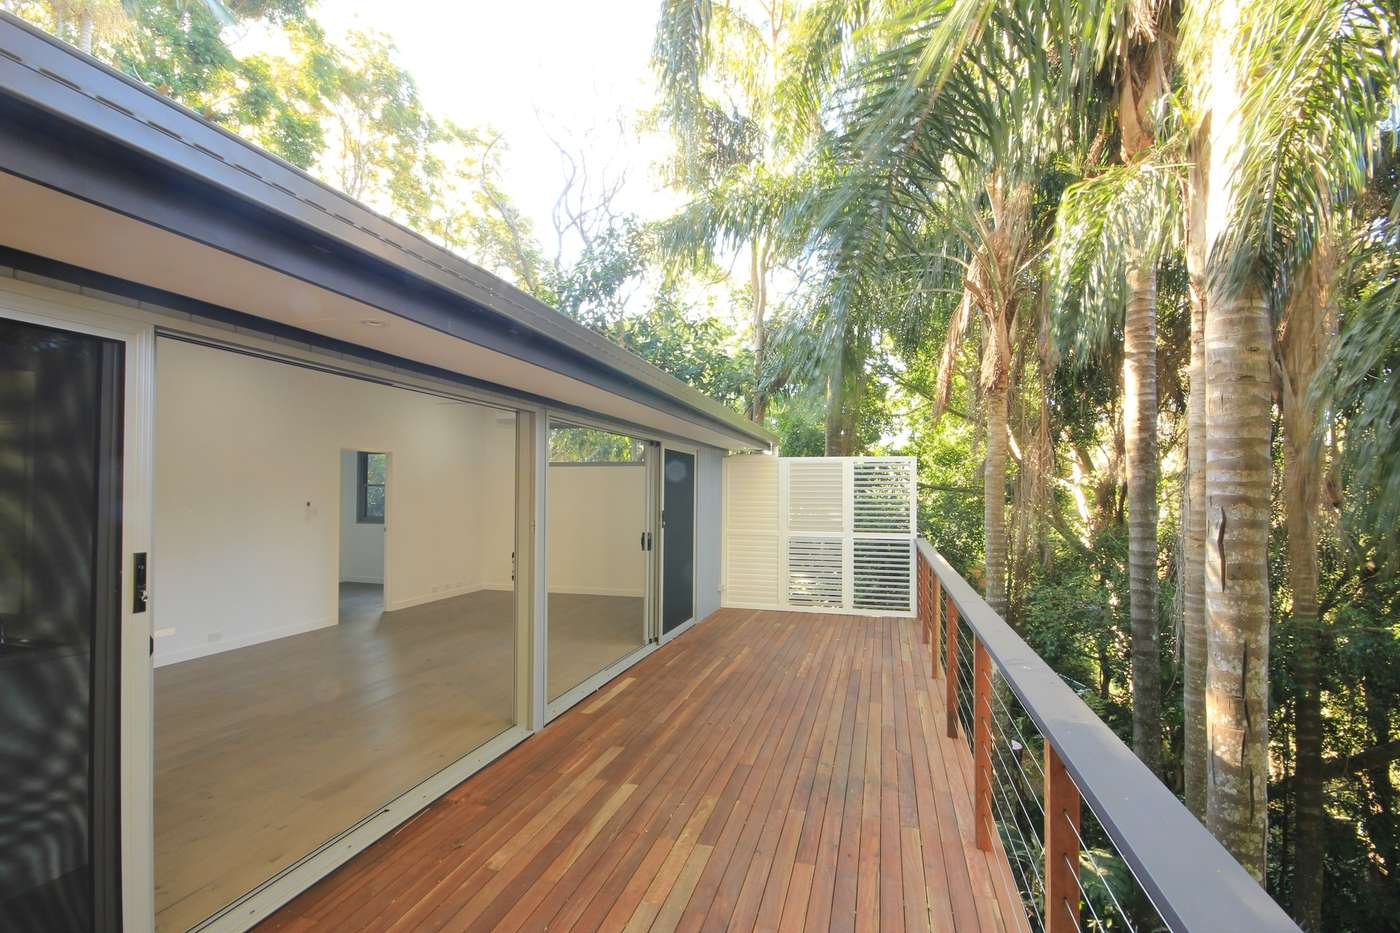 Main view of Homely house listing, 151-153 Macdonnell Road, Tamborine Mountain, QLD 4272